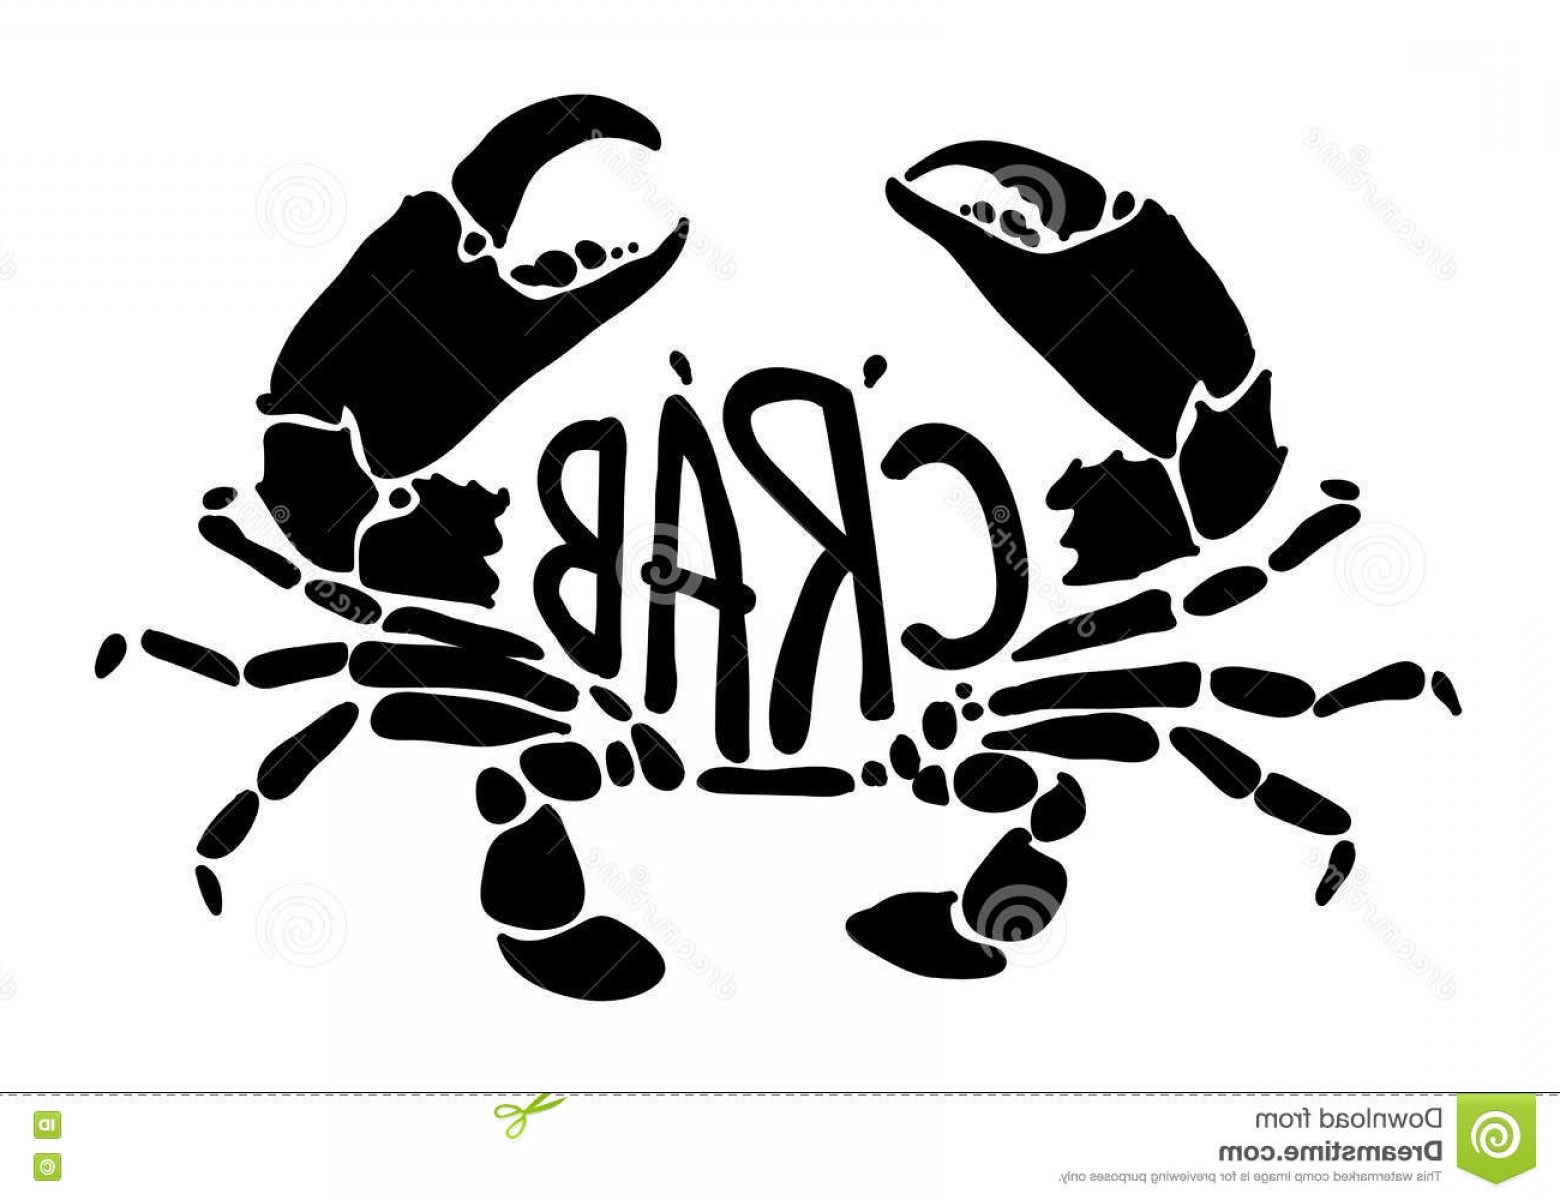 Crab Vector Black: Stock Illustration Black Crab Vector Clip Art White Background Eps Image